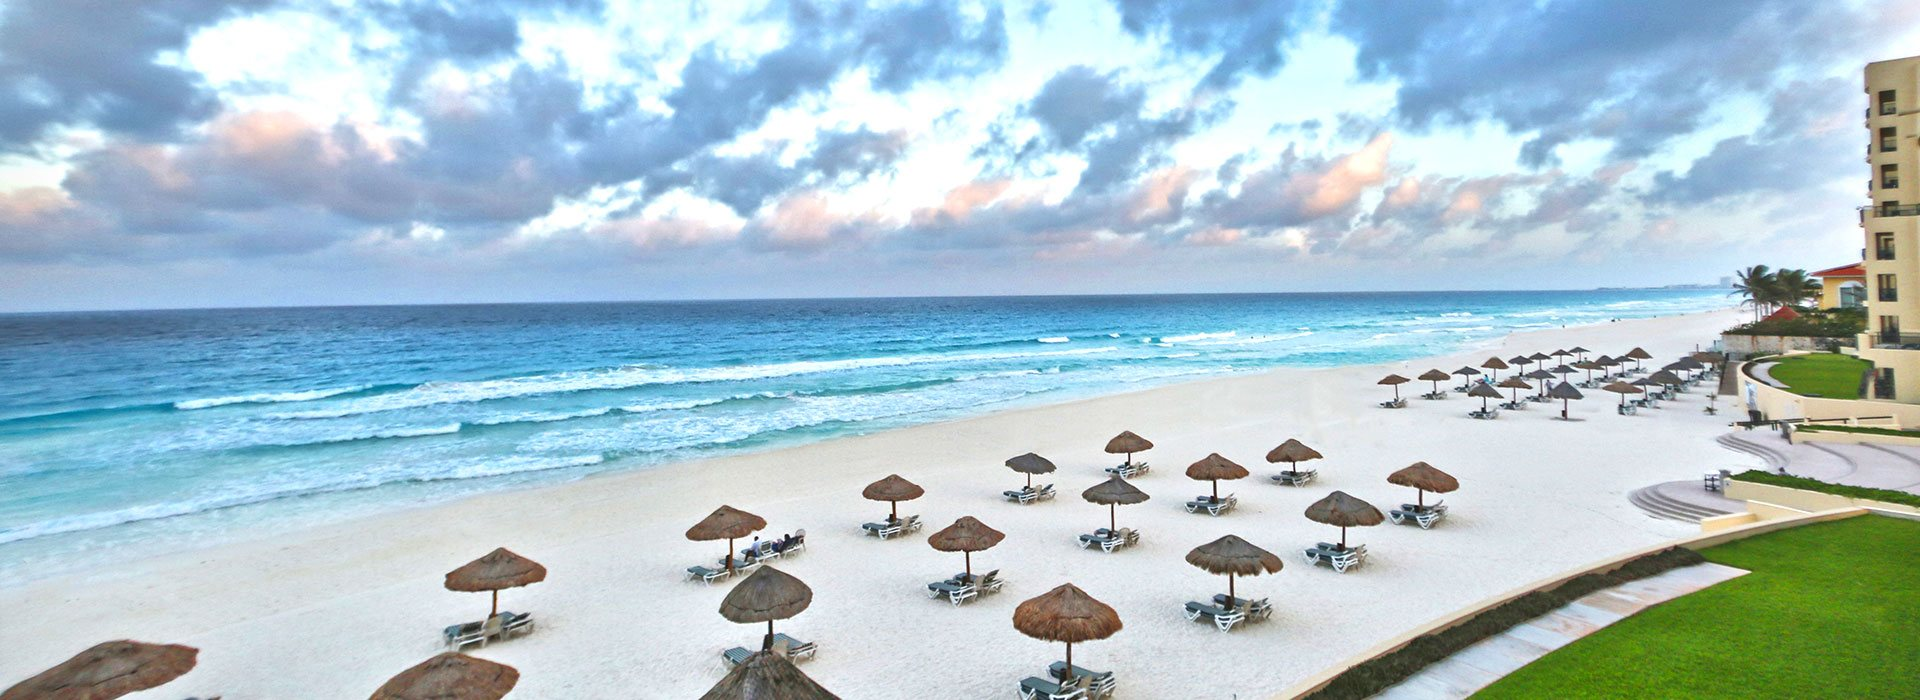 Visit one of the best beachfront resorts in Cancun offering All Inclusive Plans for all family